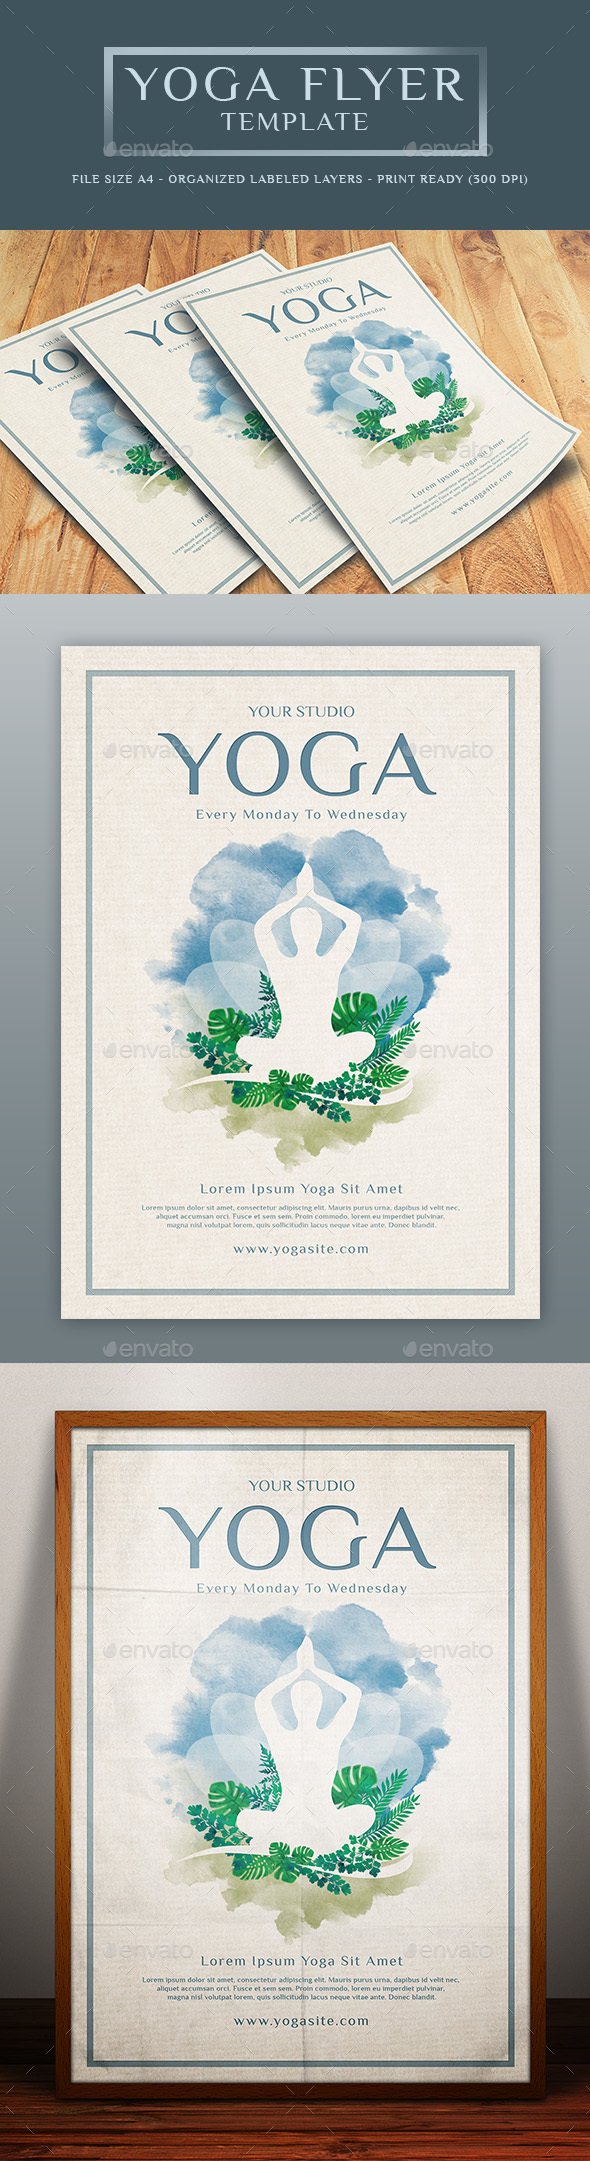 Yoga Flyer Graphics, Designs & Templates from GraphicRiver